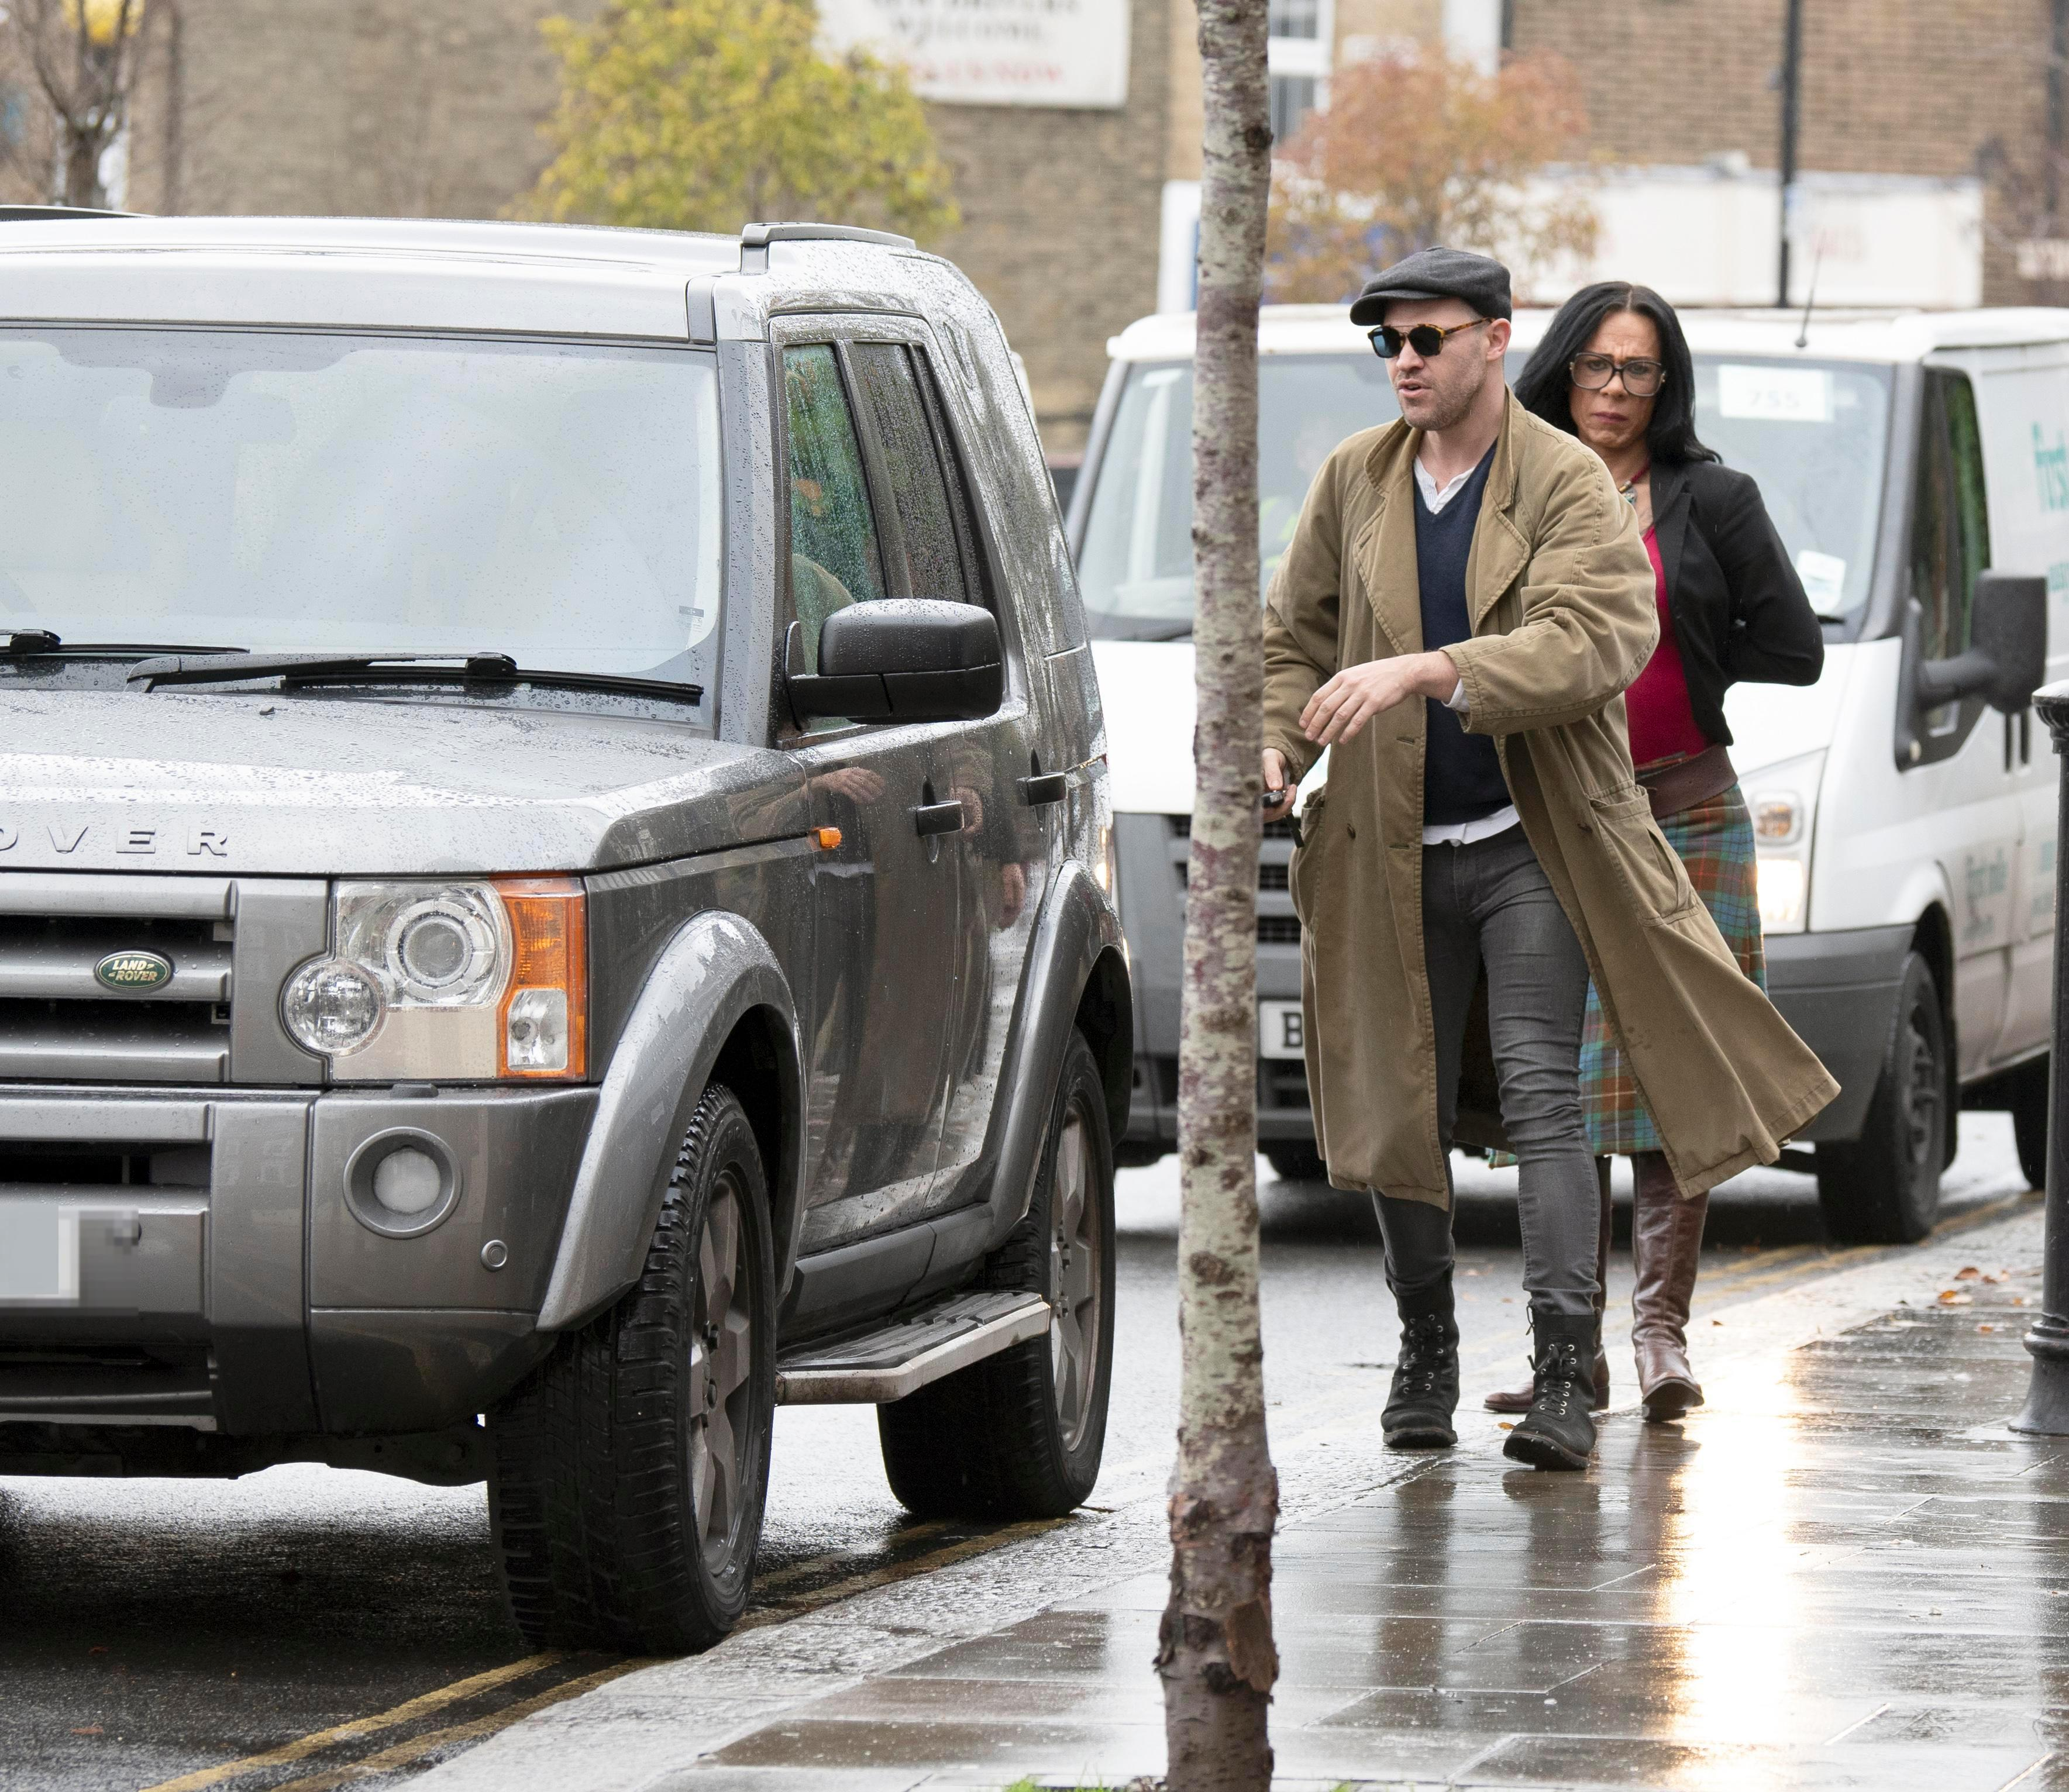 Will Young spotted parking on double yellow lines just days after his driving ban ended